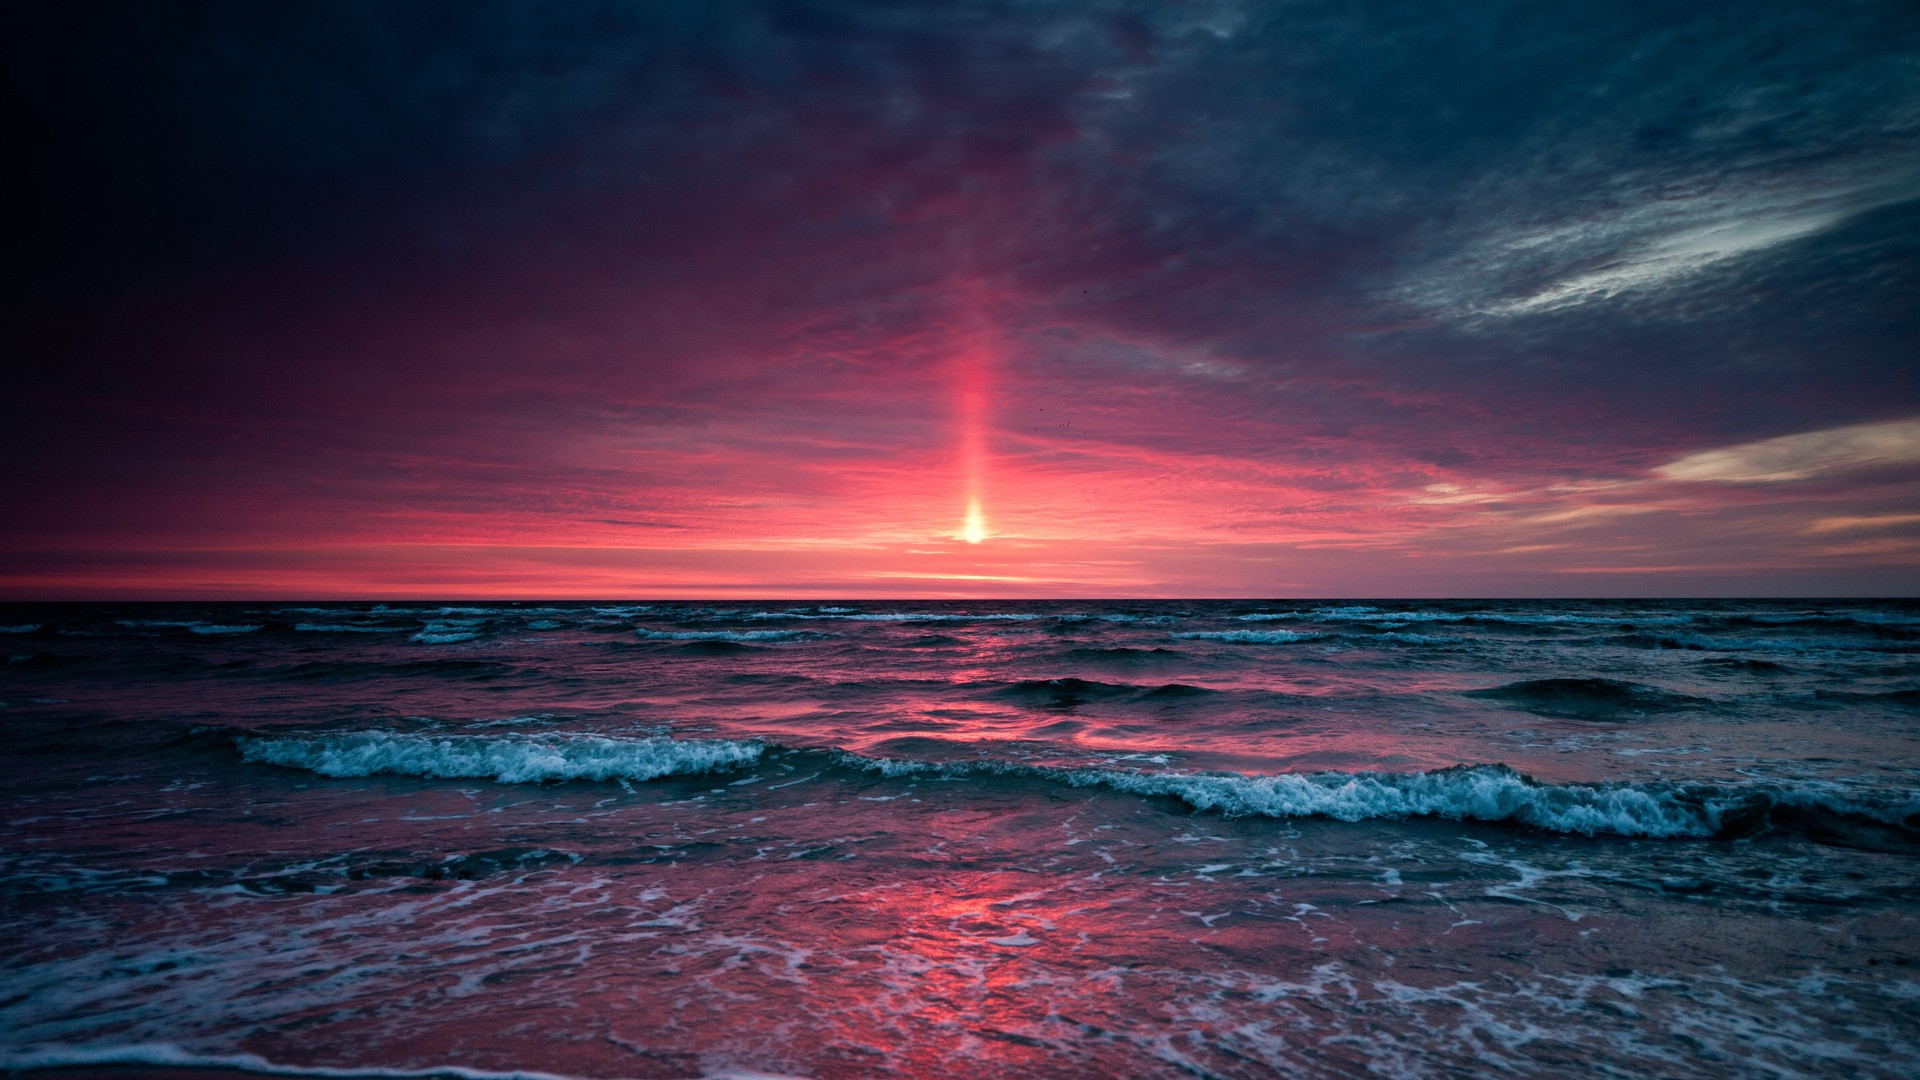 http://on-desktop.com/wps/Nature___Sundown_Pink_sky_at_sunset_in_the_sea_095605_.jpg